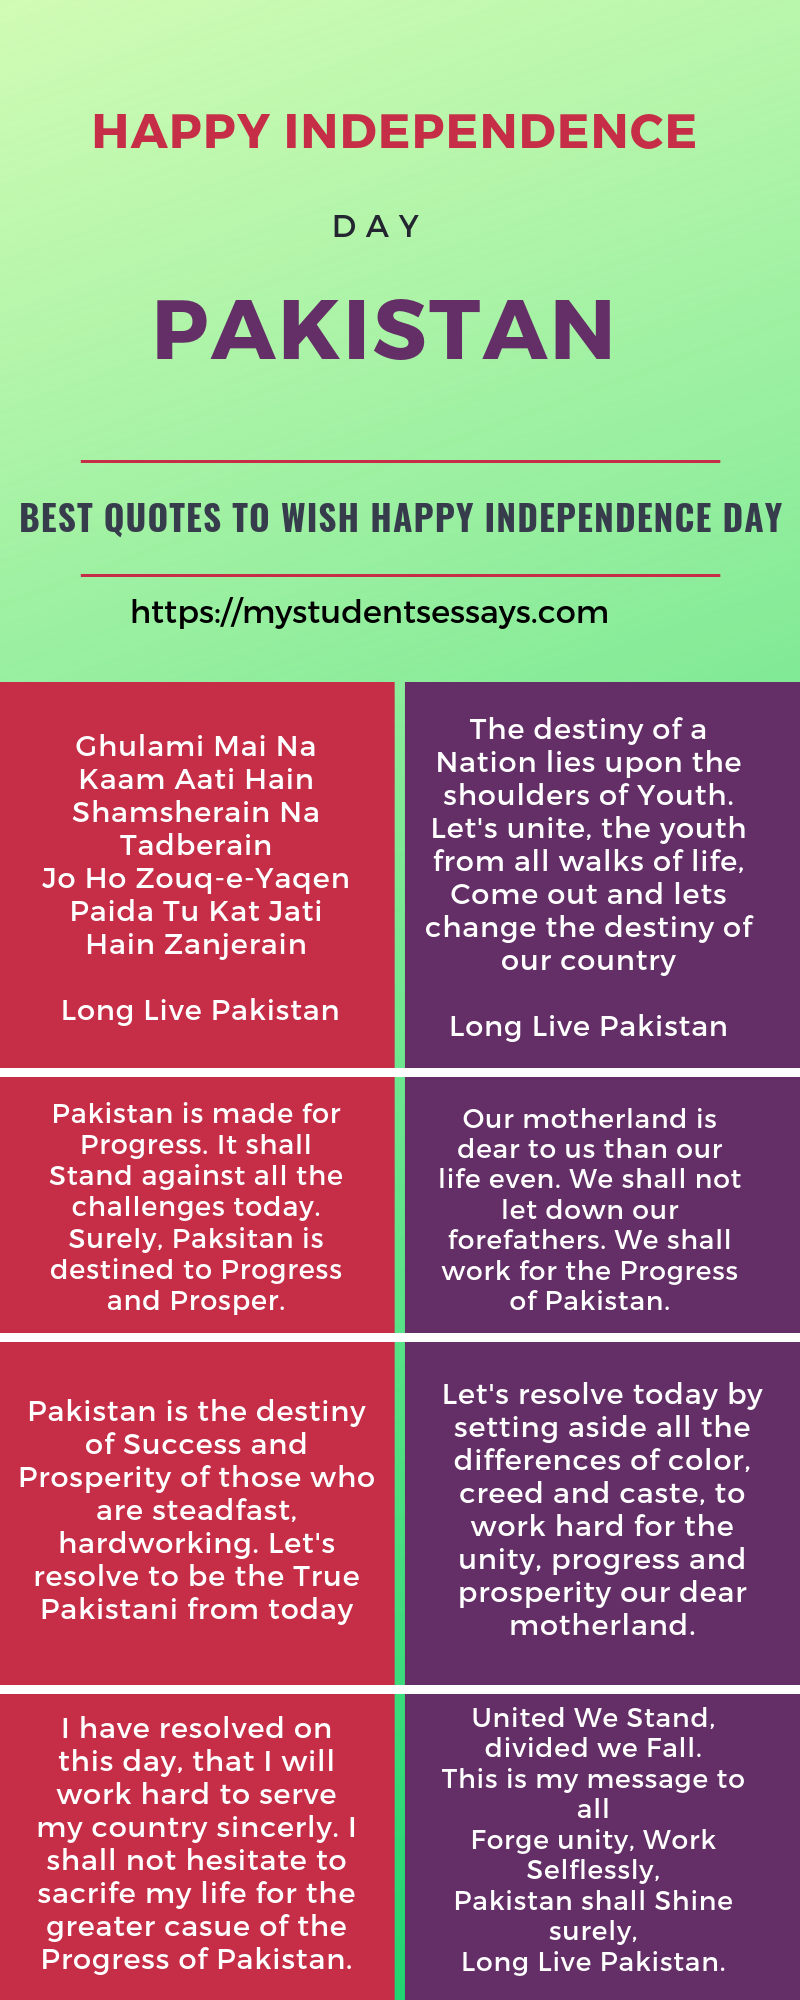 Best Awards Winning Speeches on Independence Day 2019